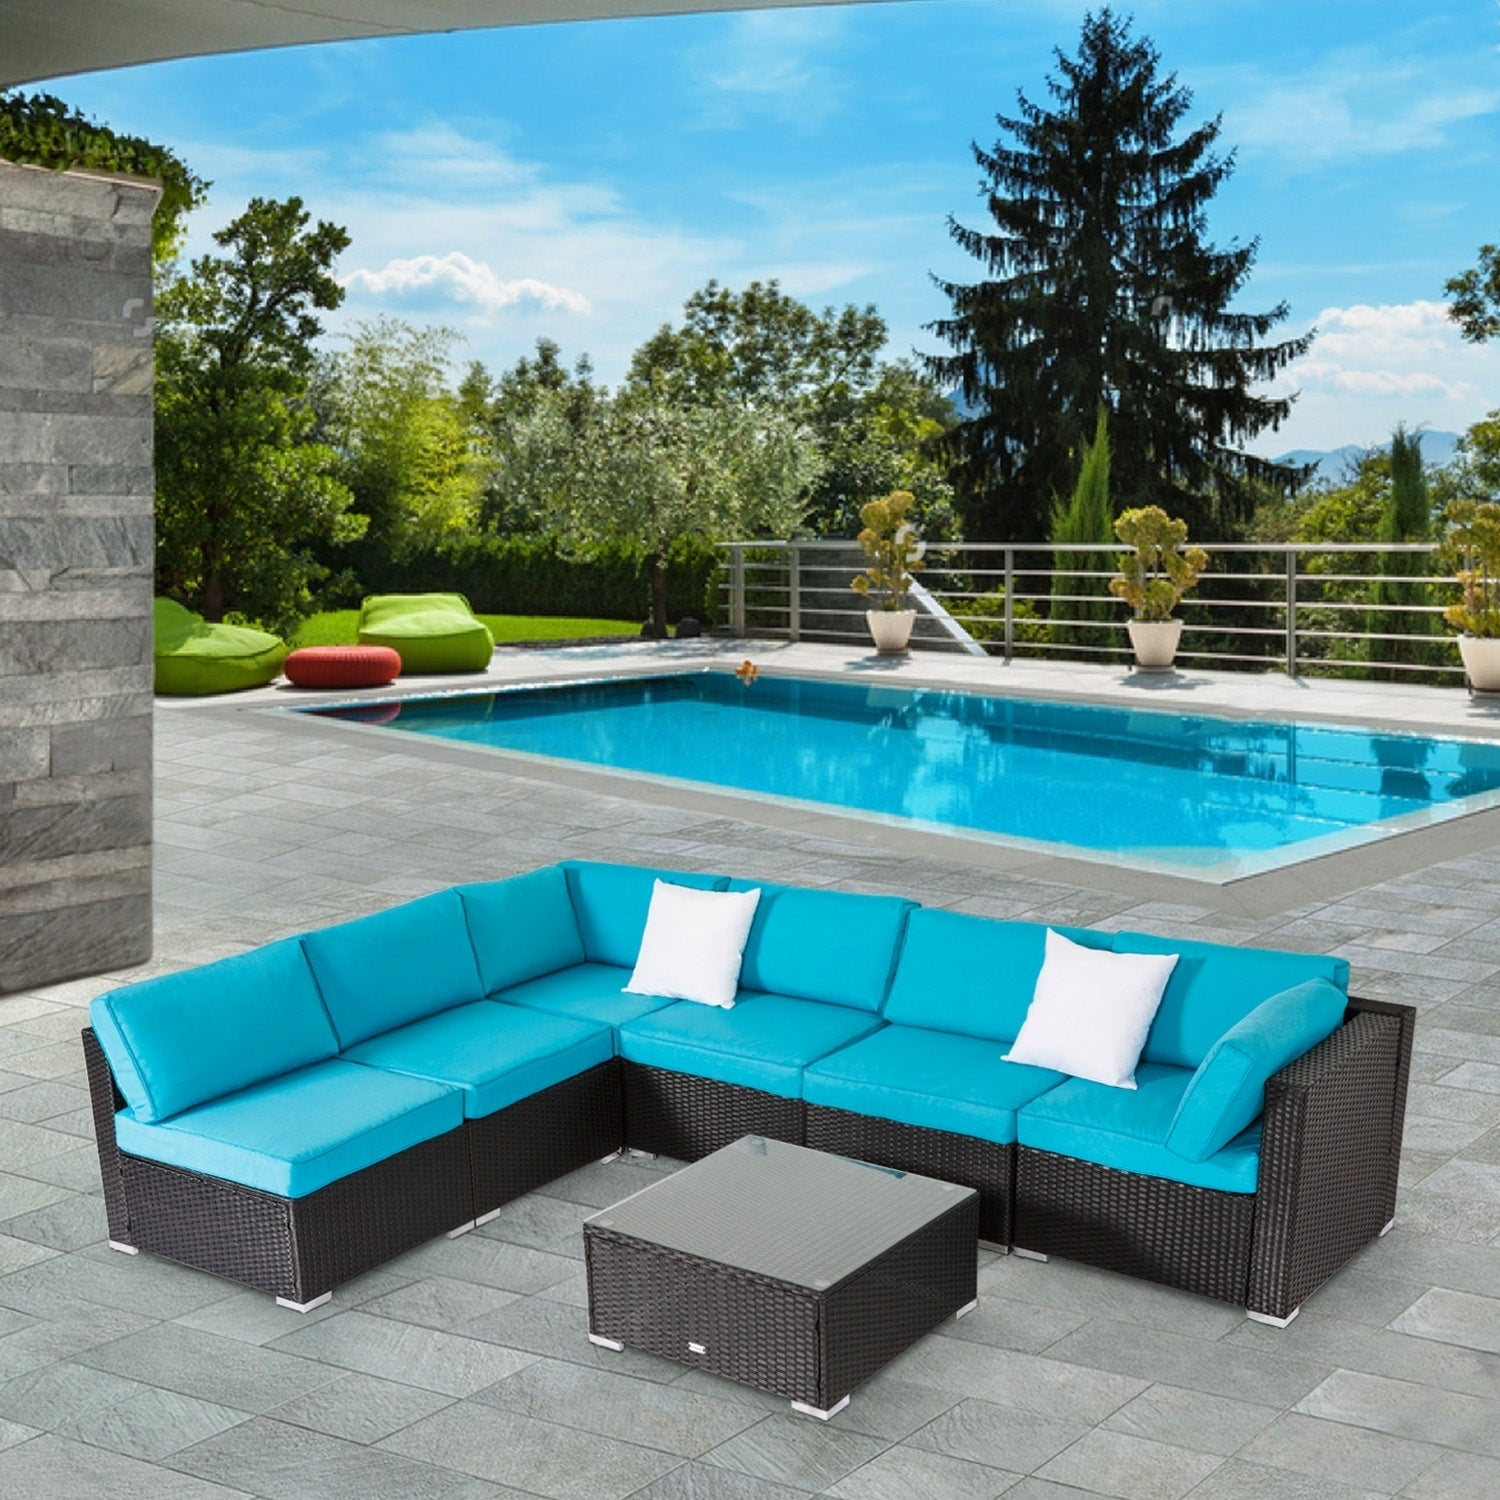 Kinbor 7 Piece Patio Furniture Set All Weather Outdoor Sectional Sofa W Cushions